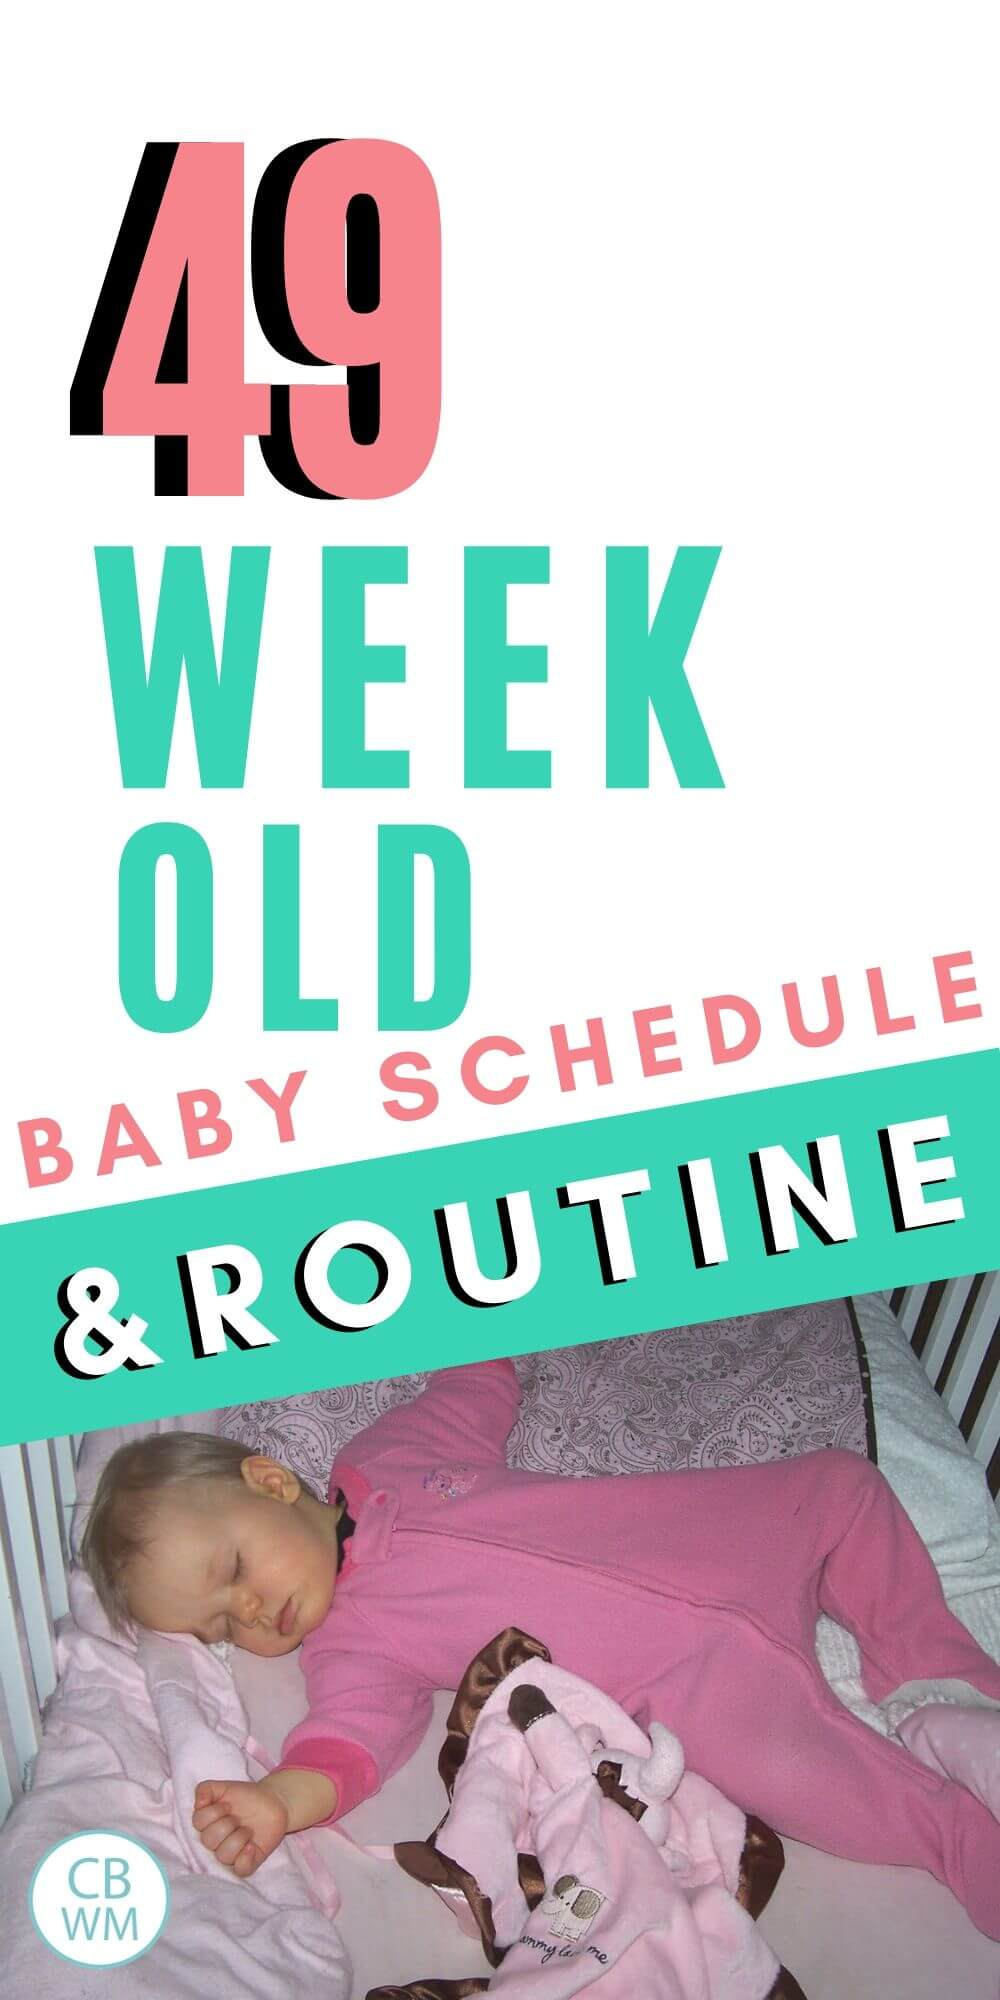 49 week old baby schedule and routine pinnable image